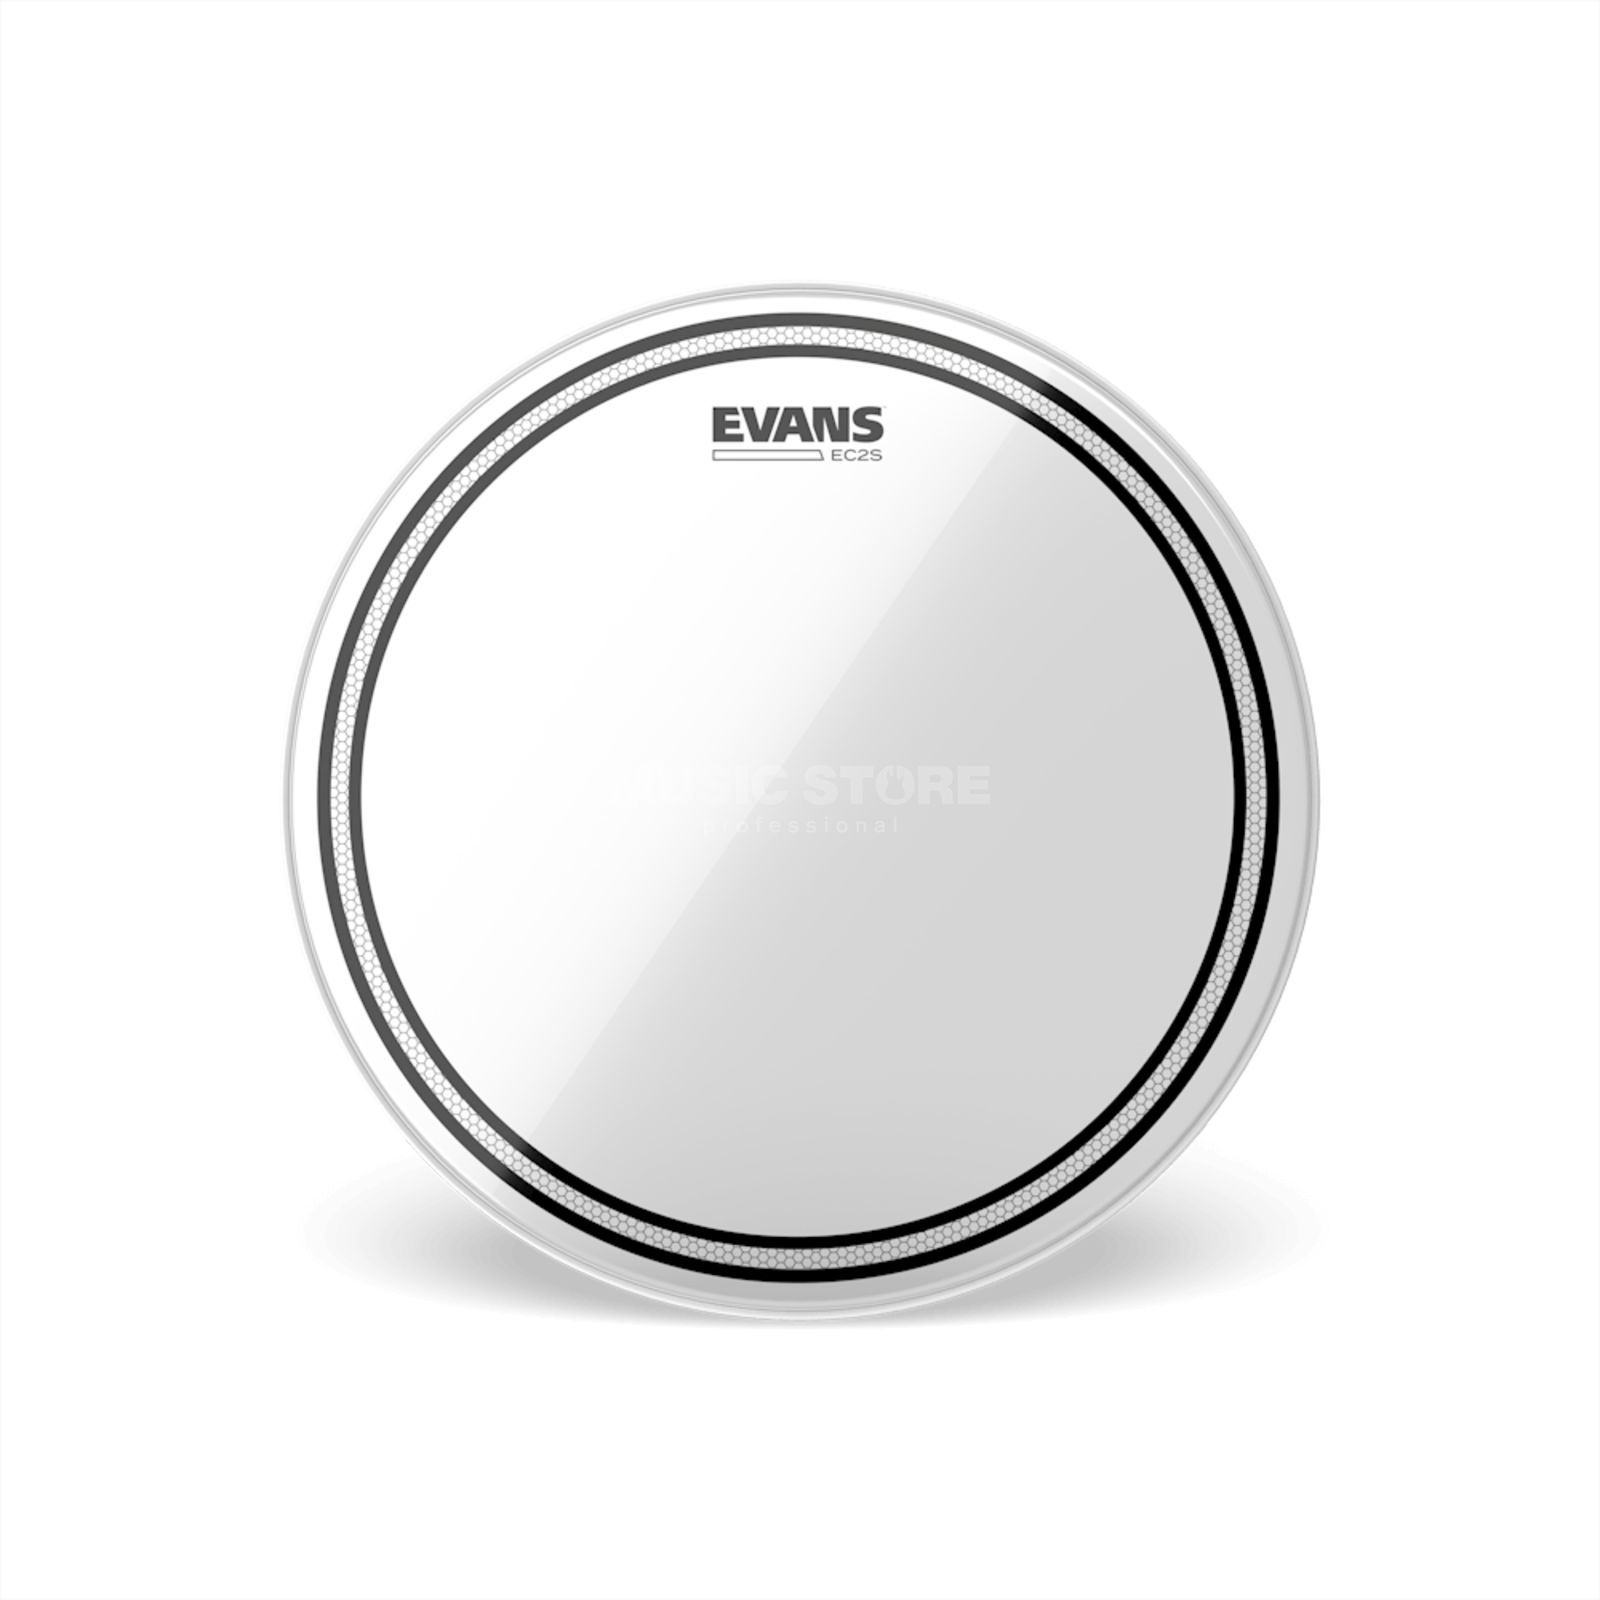 "Evans EC2 Clear SST 8"", TT08EC2S, Tom Batter Product Image"